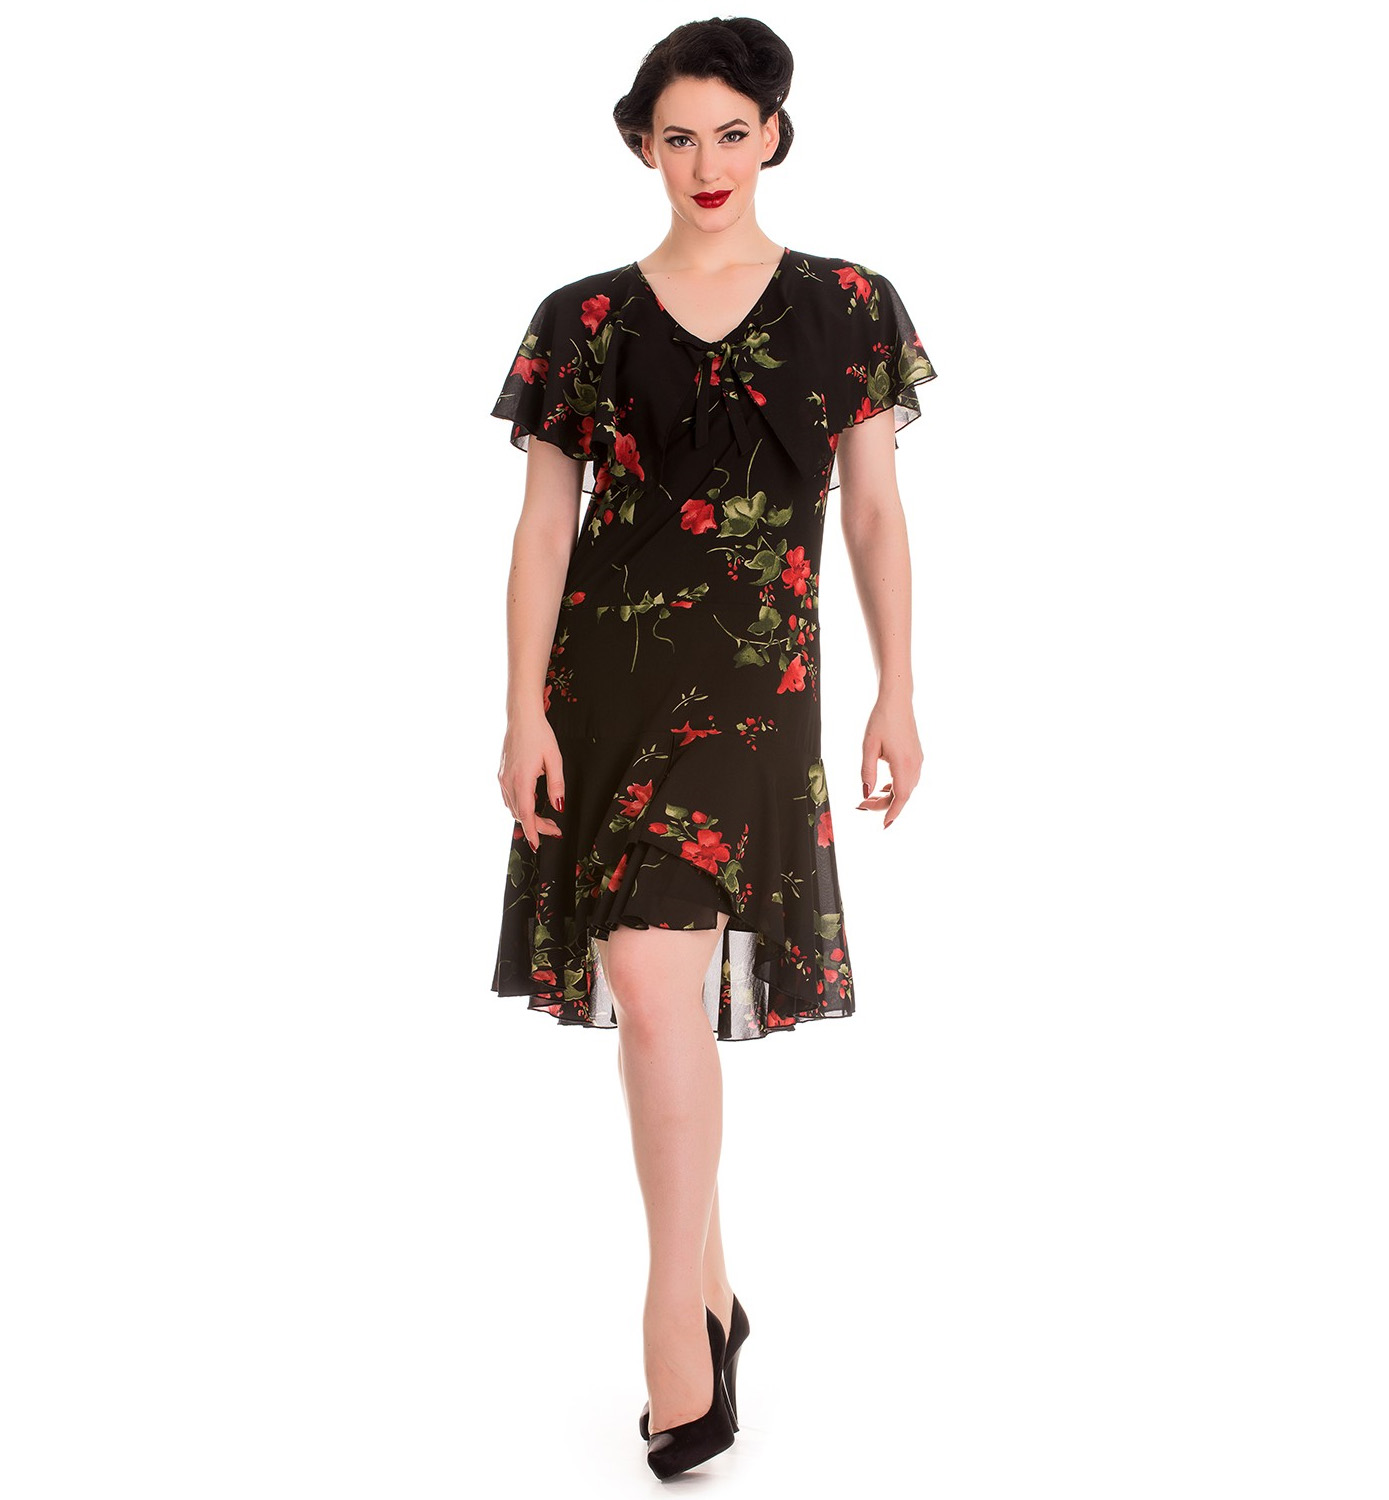 Hell-Bunny-20s-40s-Black-Flapper-Cocktail-Party-Dress-LILY-Floral-Black-All-Size thumbnail 3